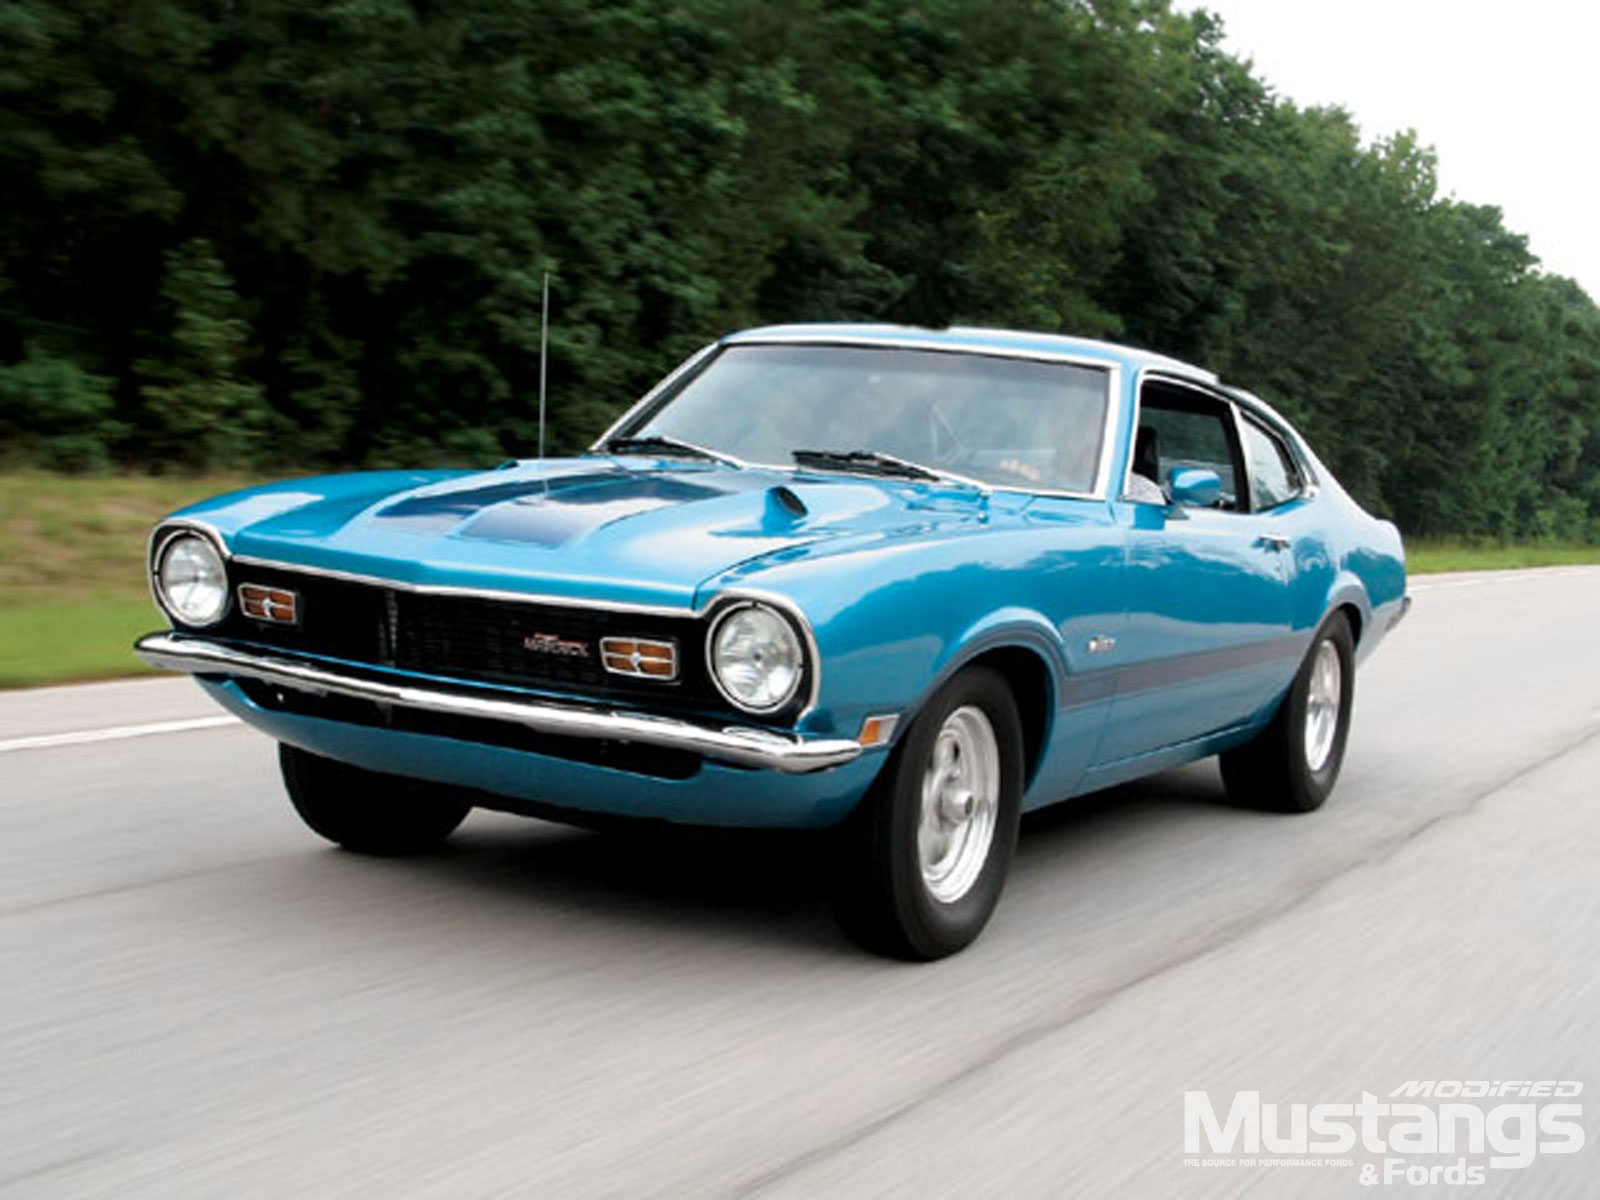 1972 Ford Maverick Grabber Front View